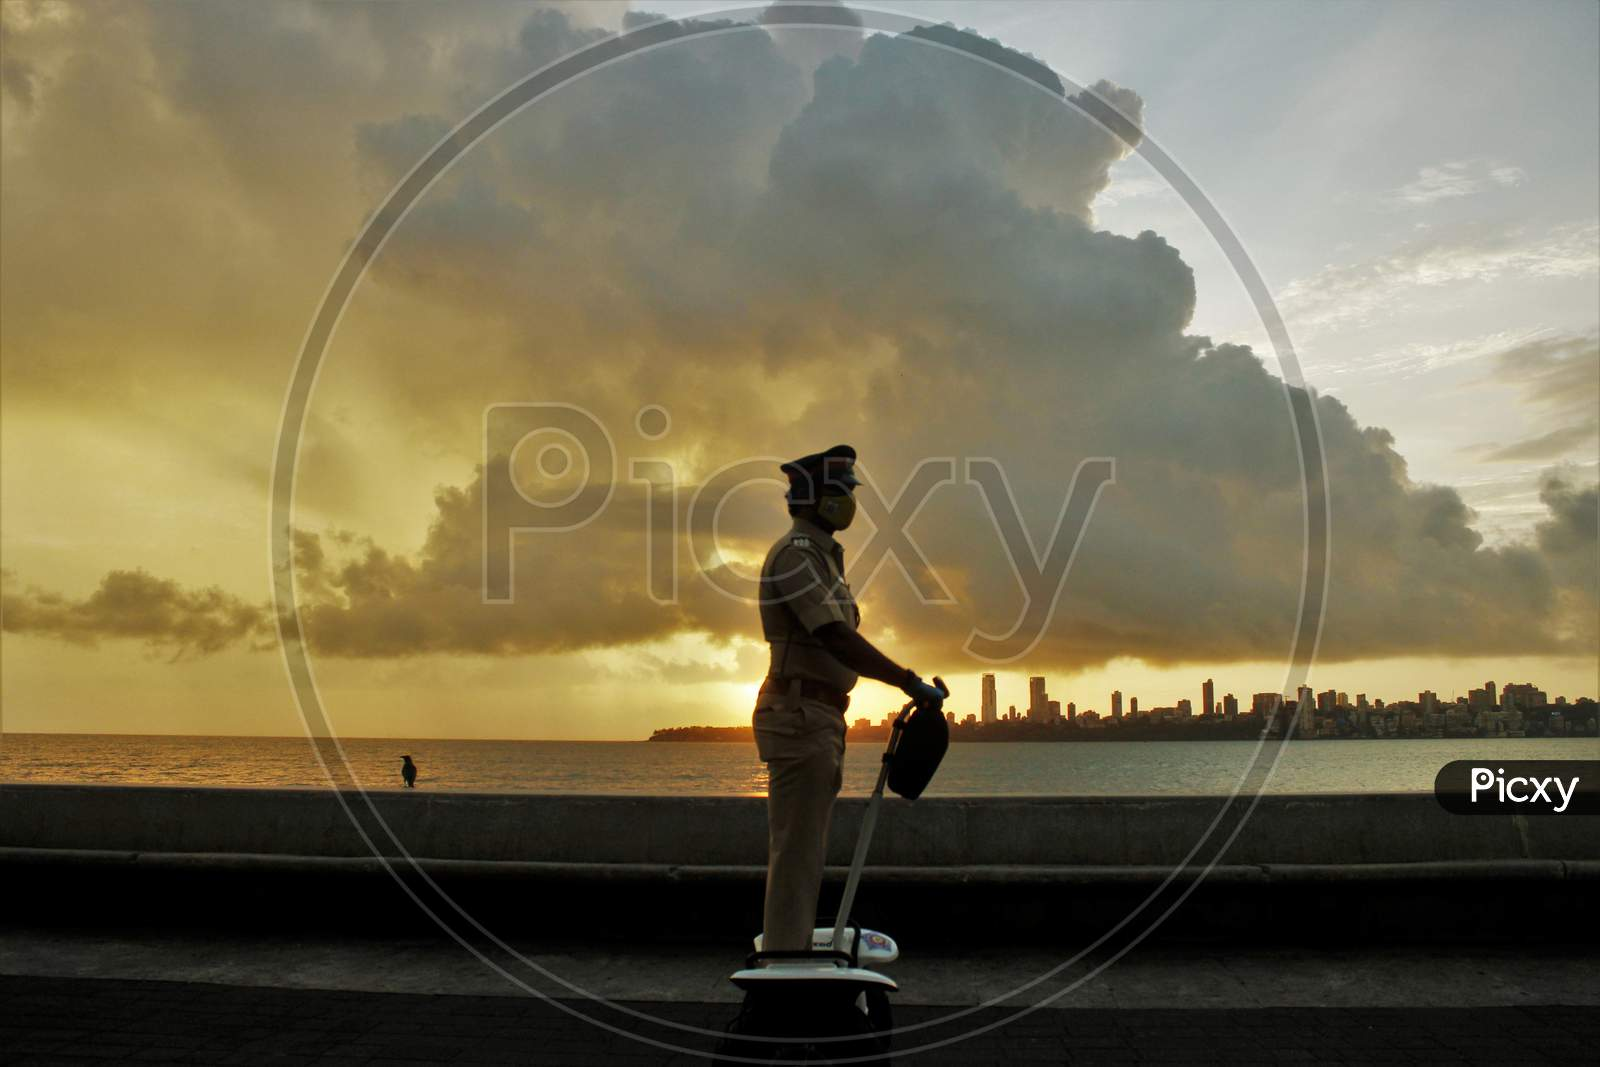 A Mumbai Police official rides a segway at the launch of 'FREEGO self balancing scooter/Segway electric scooter' for police patrolling on sea facing promenades in Mumbai, India on June 11, 2020.